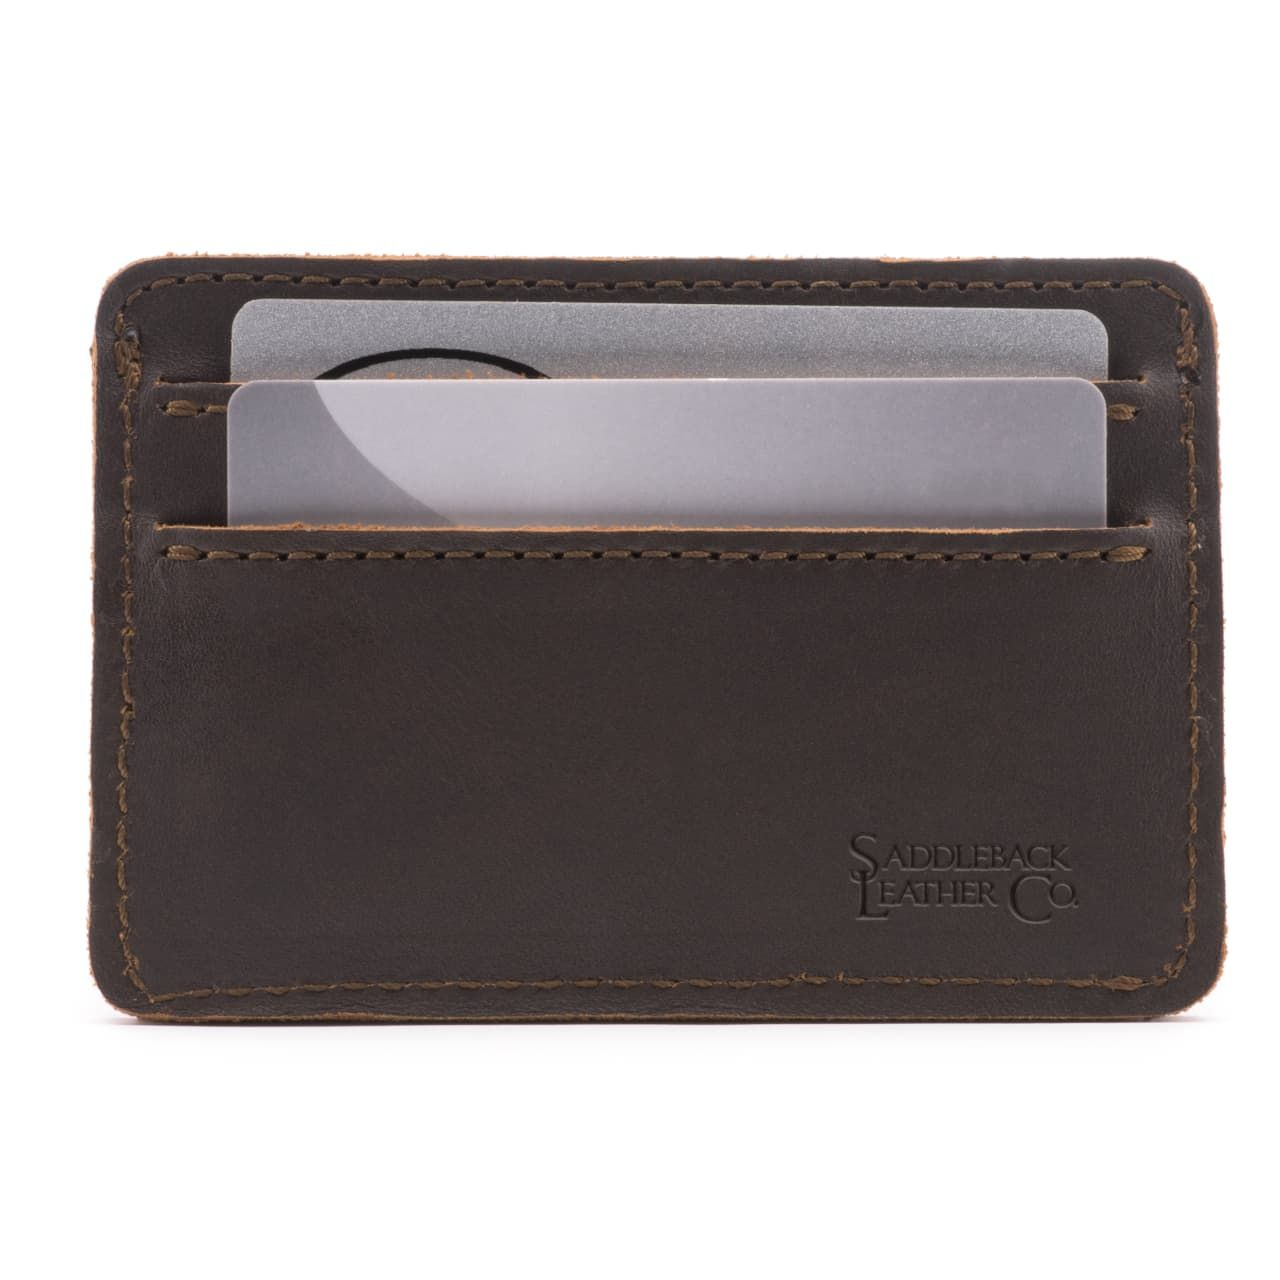 leather front pocket wallet in dark coffee brown leather